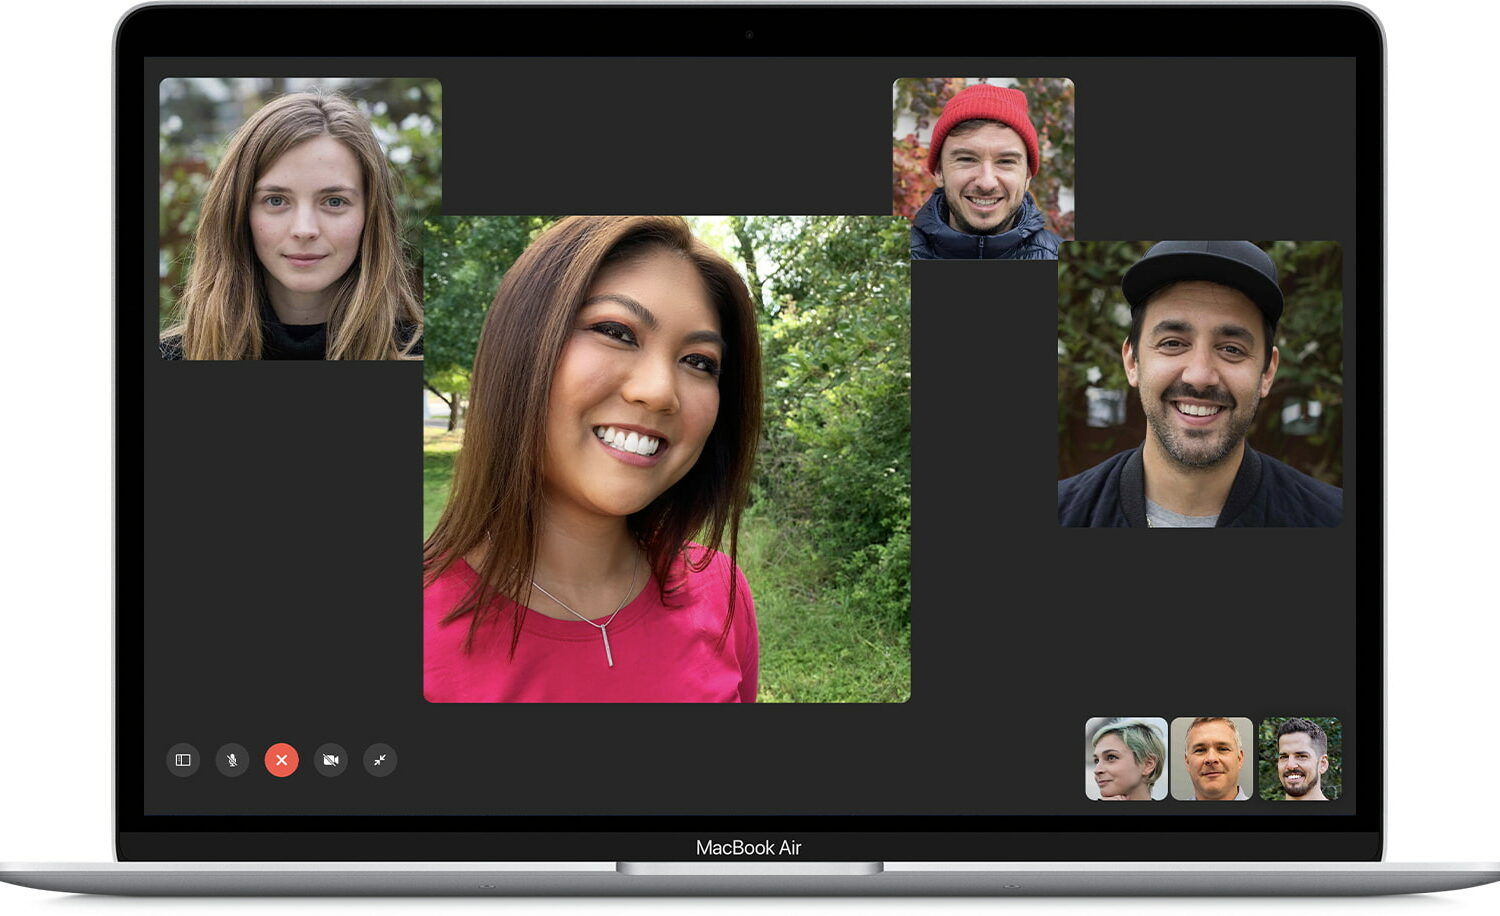 How to fix FaceTime not working on Mac